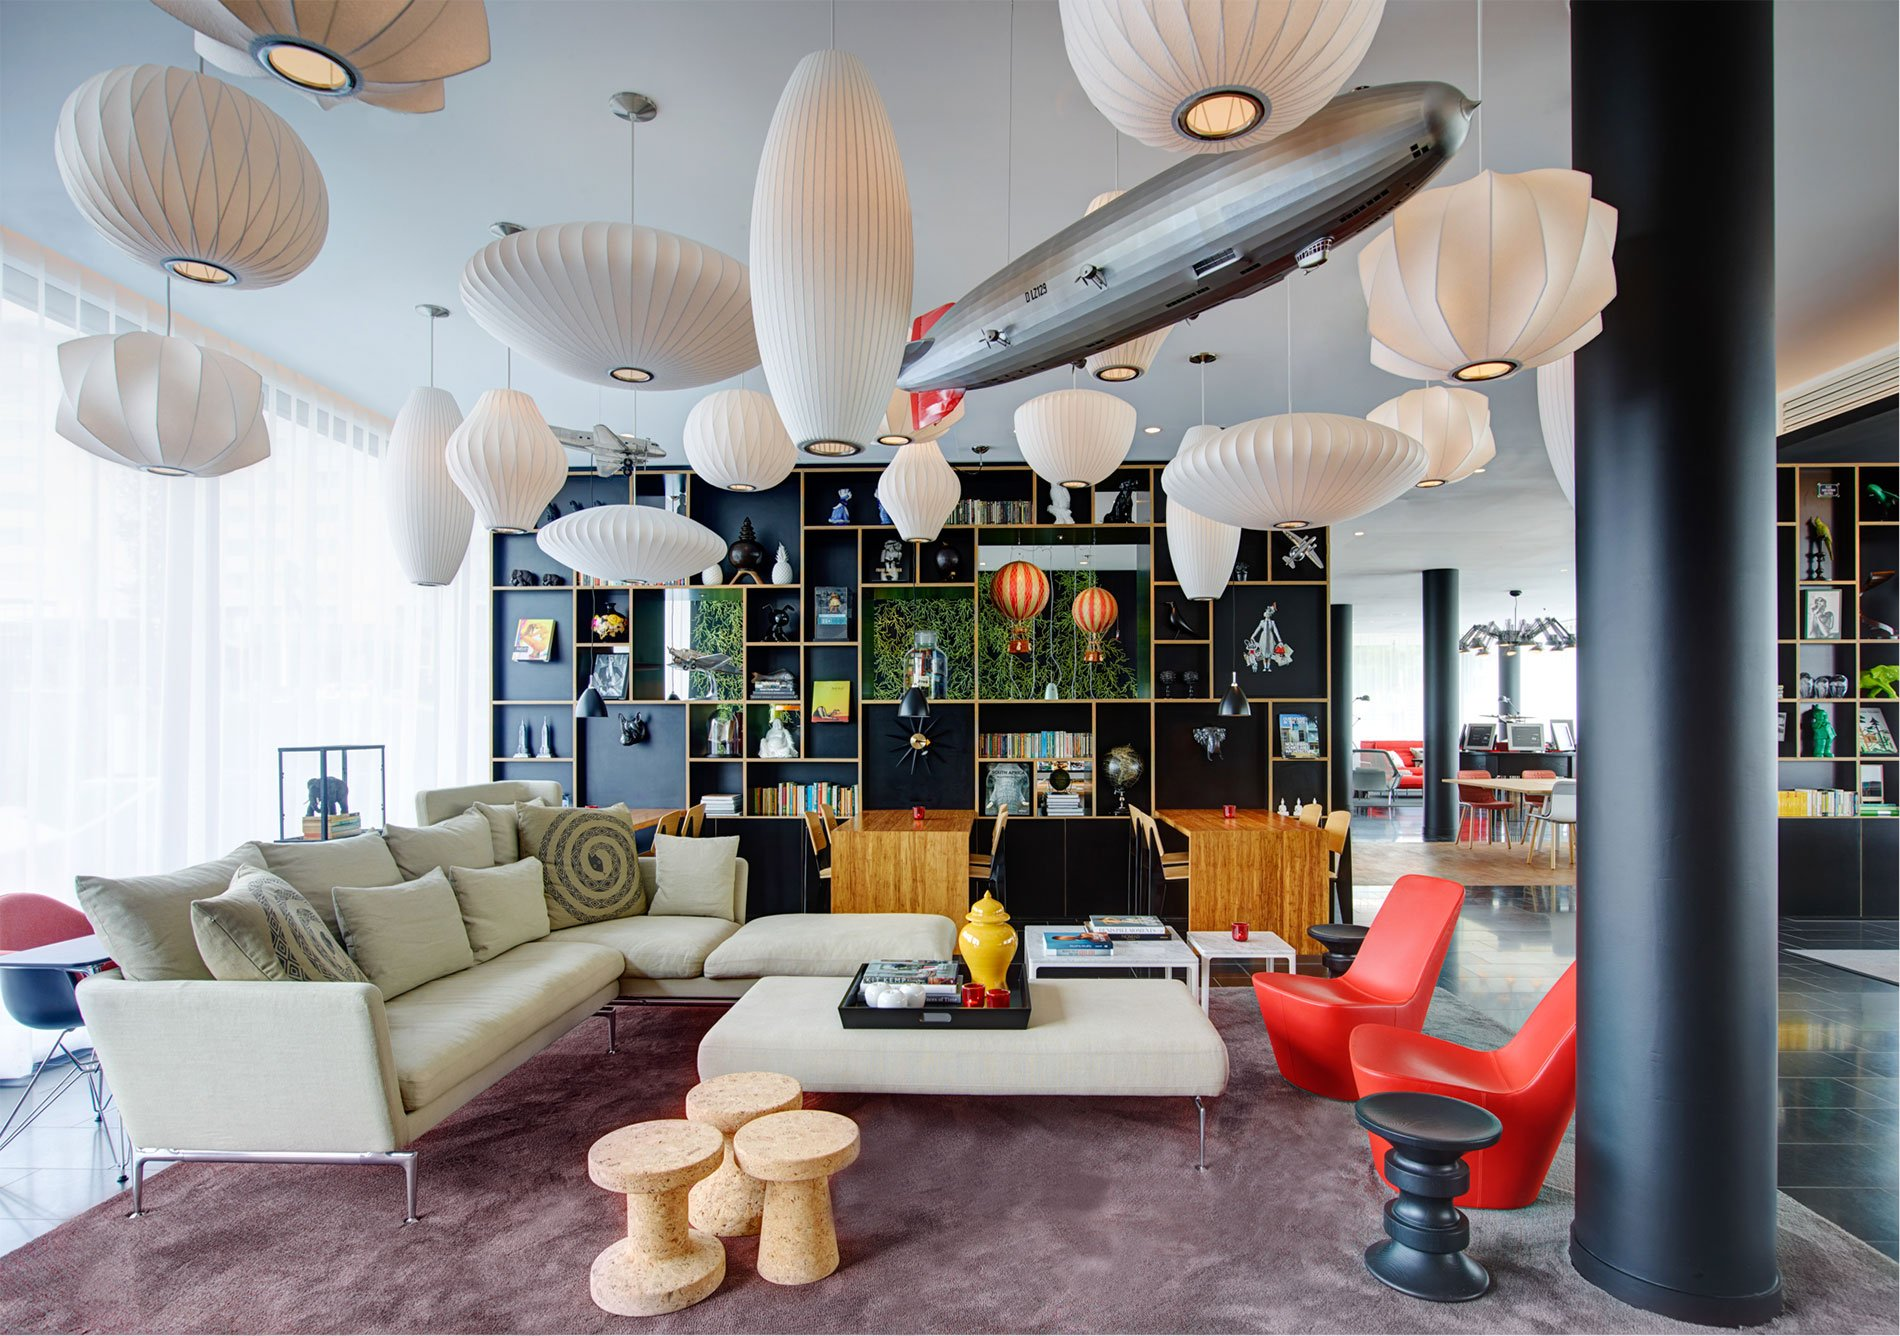 New citizenm hotels in paris and new york for Top design hotels in paris